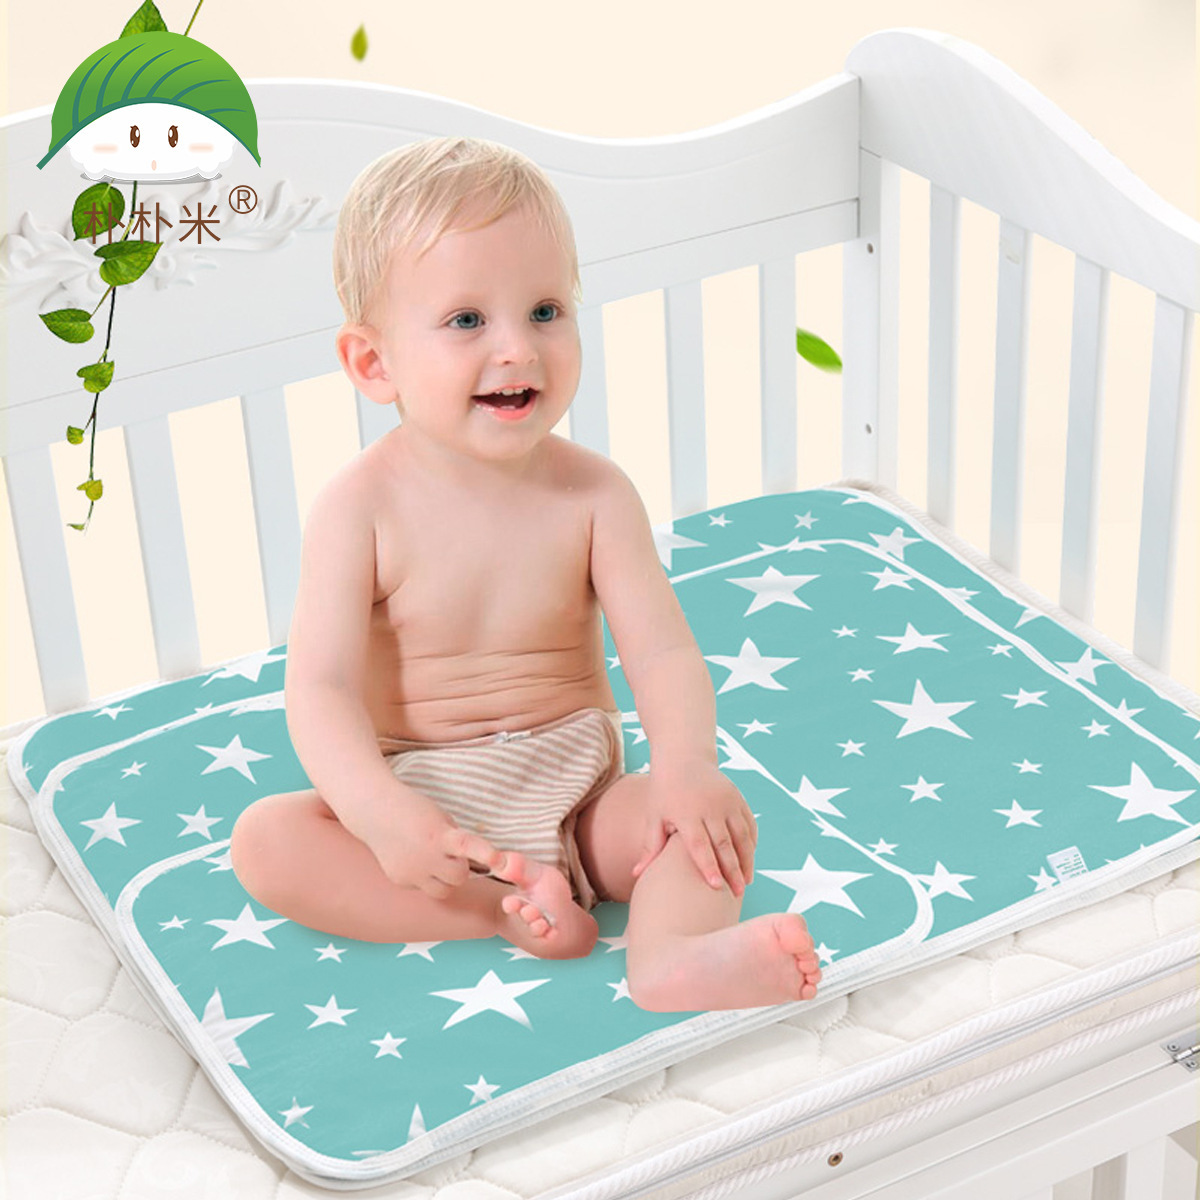 Baby Changing Mat Cartoon Cotton Waterproof Sheet Baby Changing Pad Diapers Urinal Game Play Cover Baby Mattress Vivid And Great In Style Changing Pads & Covers